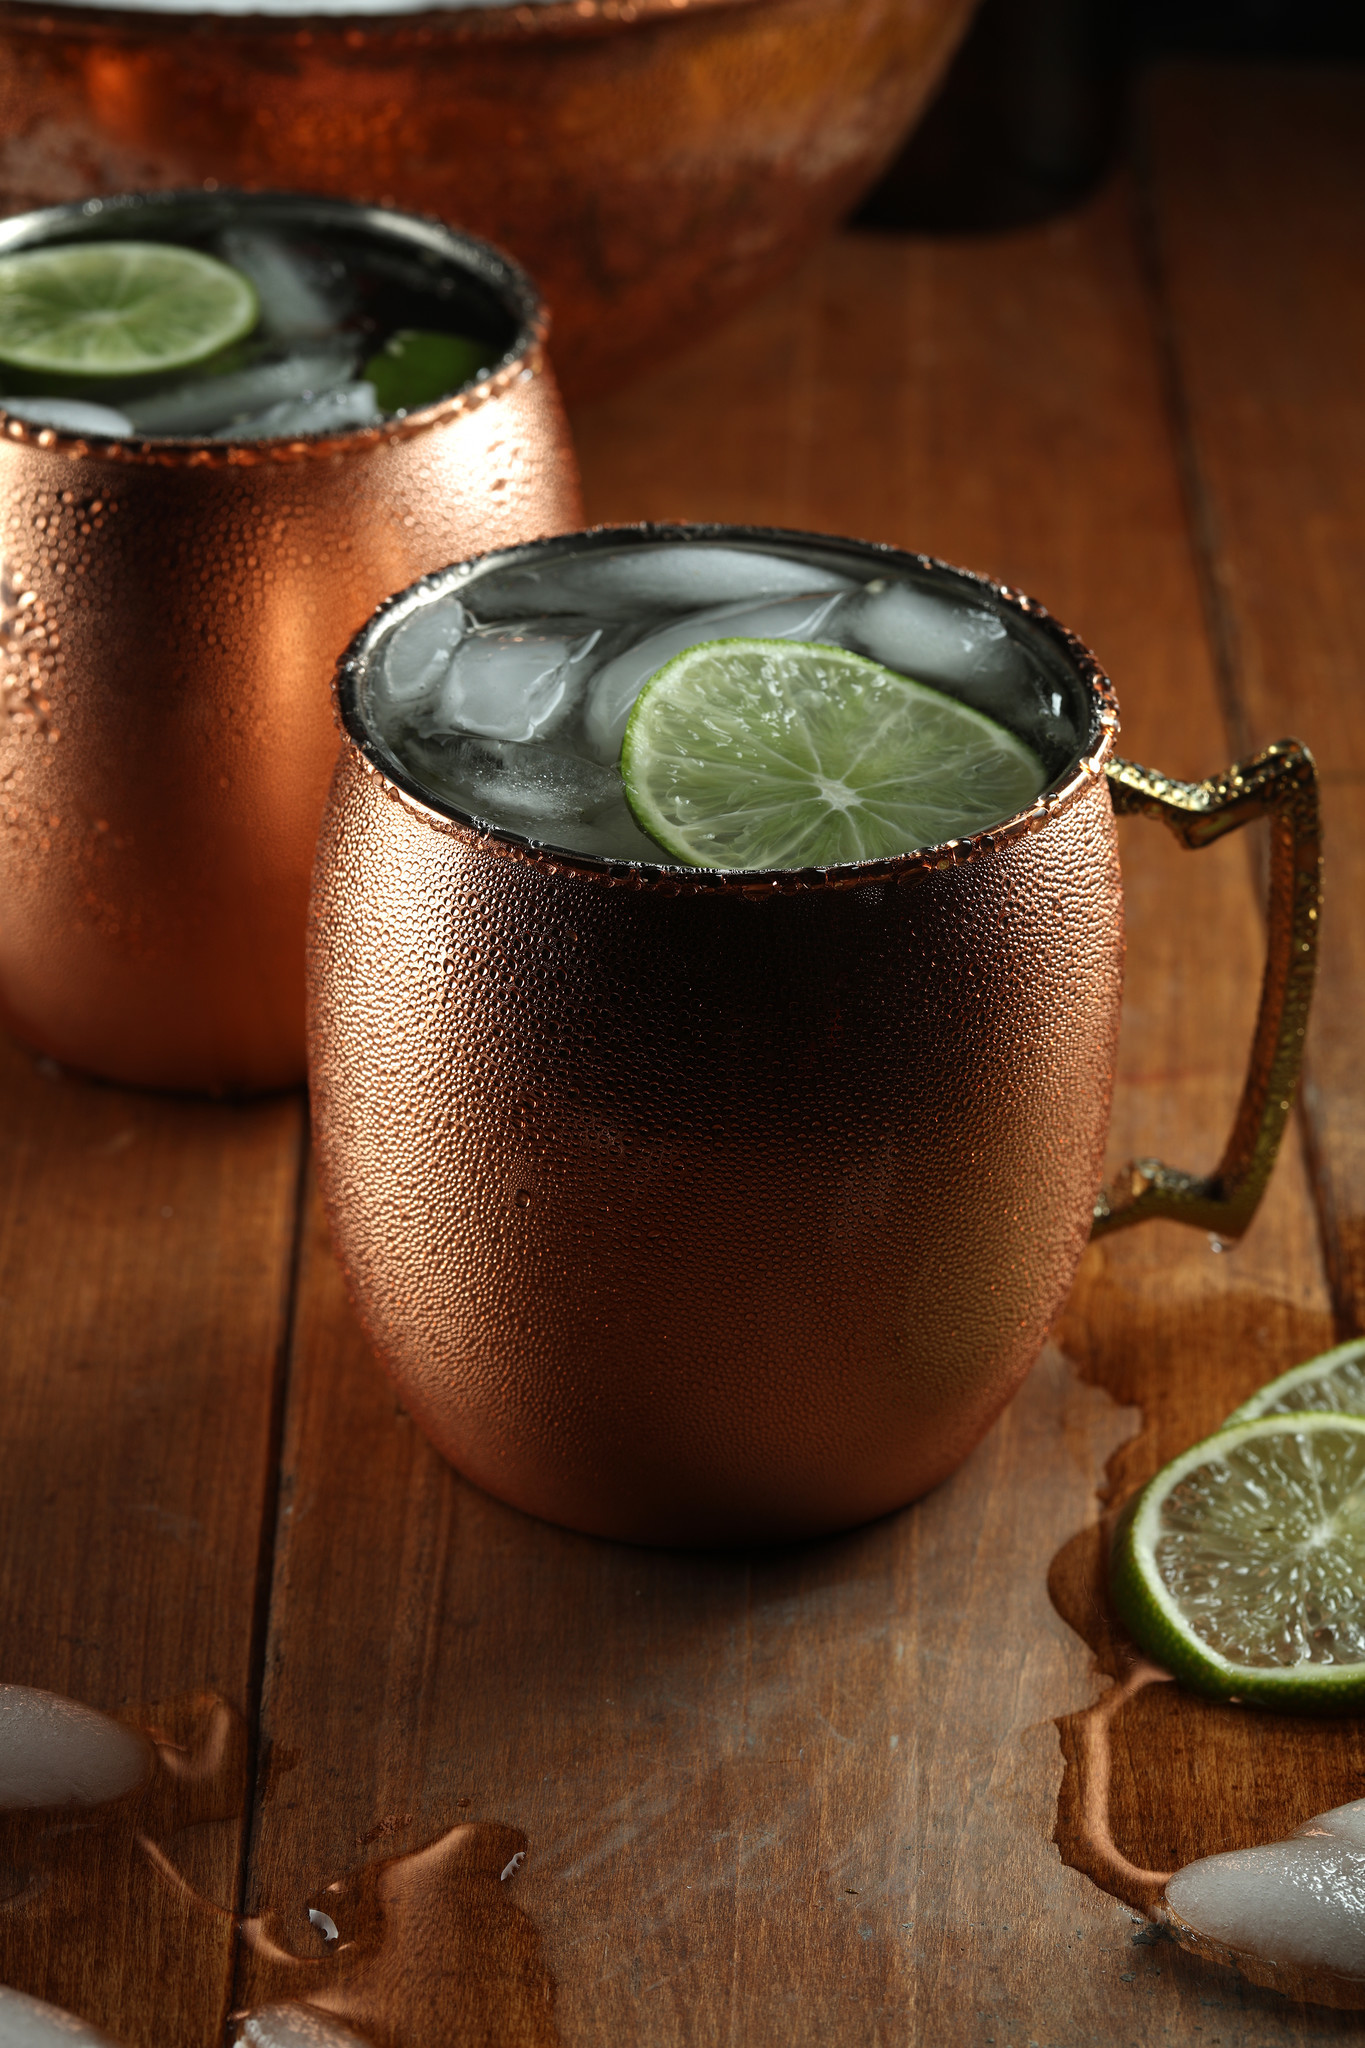 heads up moscow mule lovers that copper mug could be poisoning you chicago tribune - Moscow Mule Copper Mug